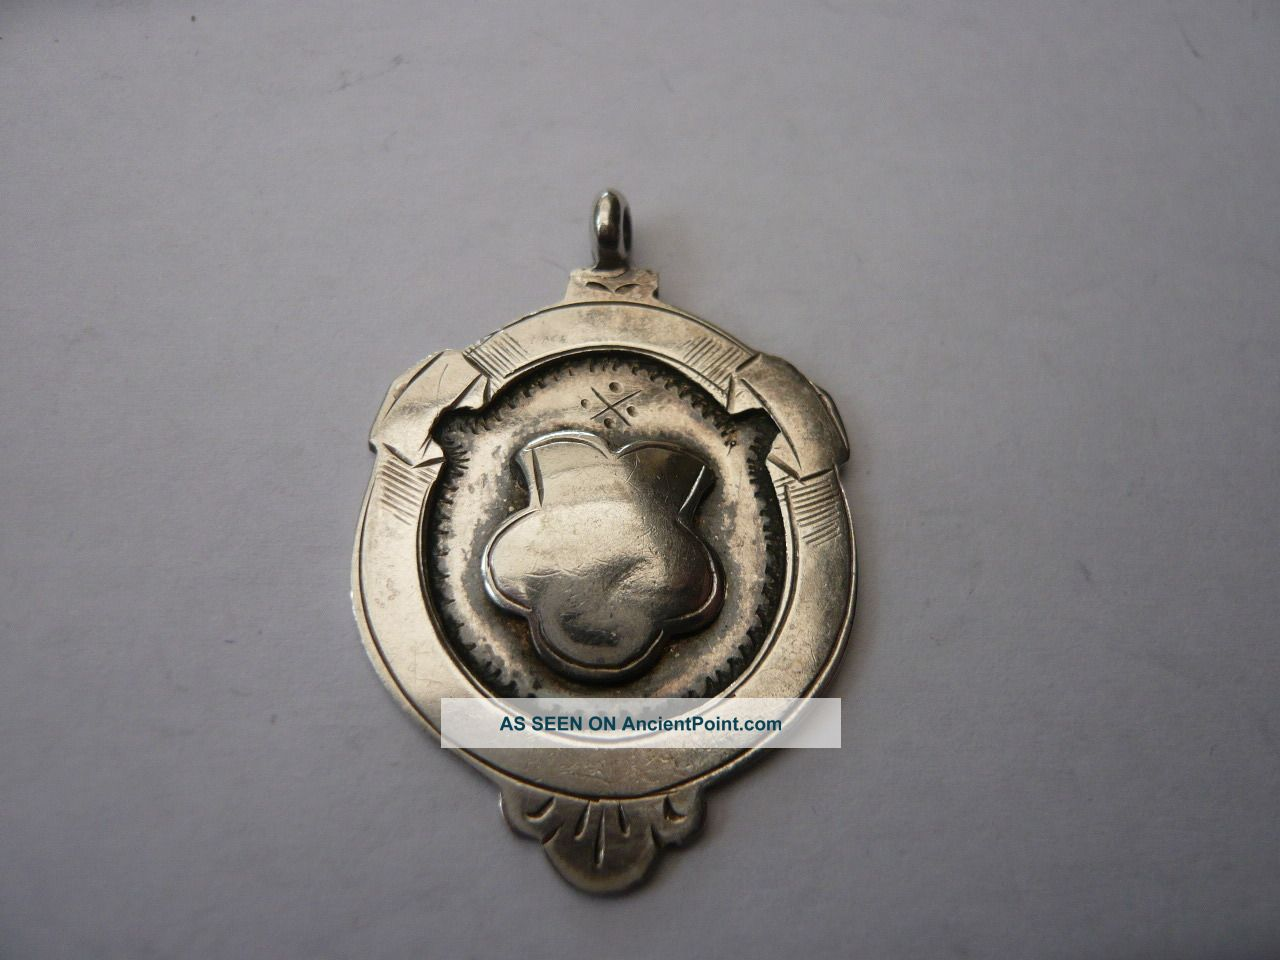 Vintage Sterling Silver Pocket Watch Chain Fob Medal 1920,  S Hm 1928 Fattorini Pocket Watches/ Chains/ Fobs photo